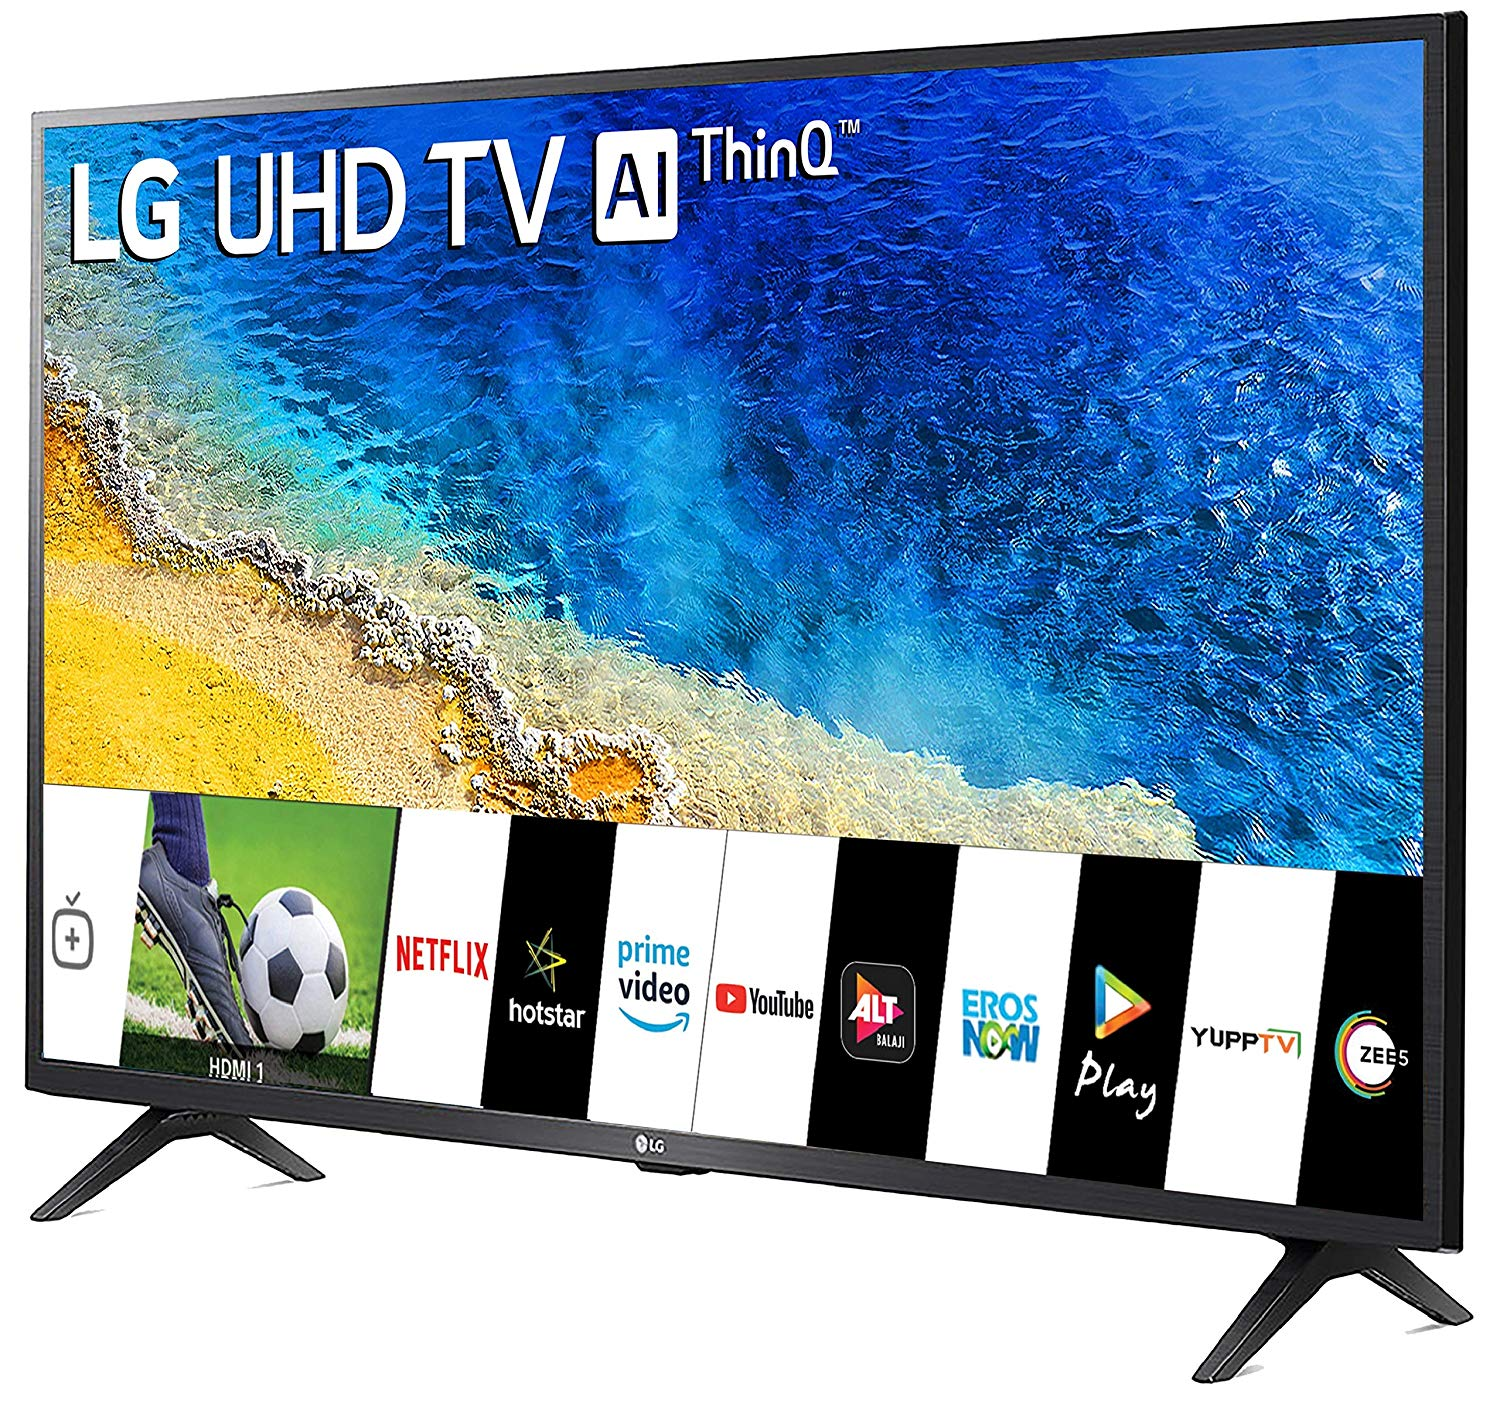 Best 43 Inch Smart TV In India 2020 – Review & Buying Guide